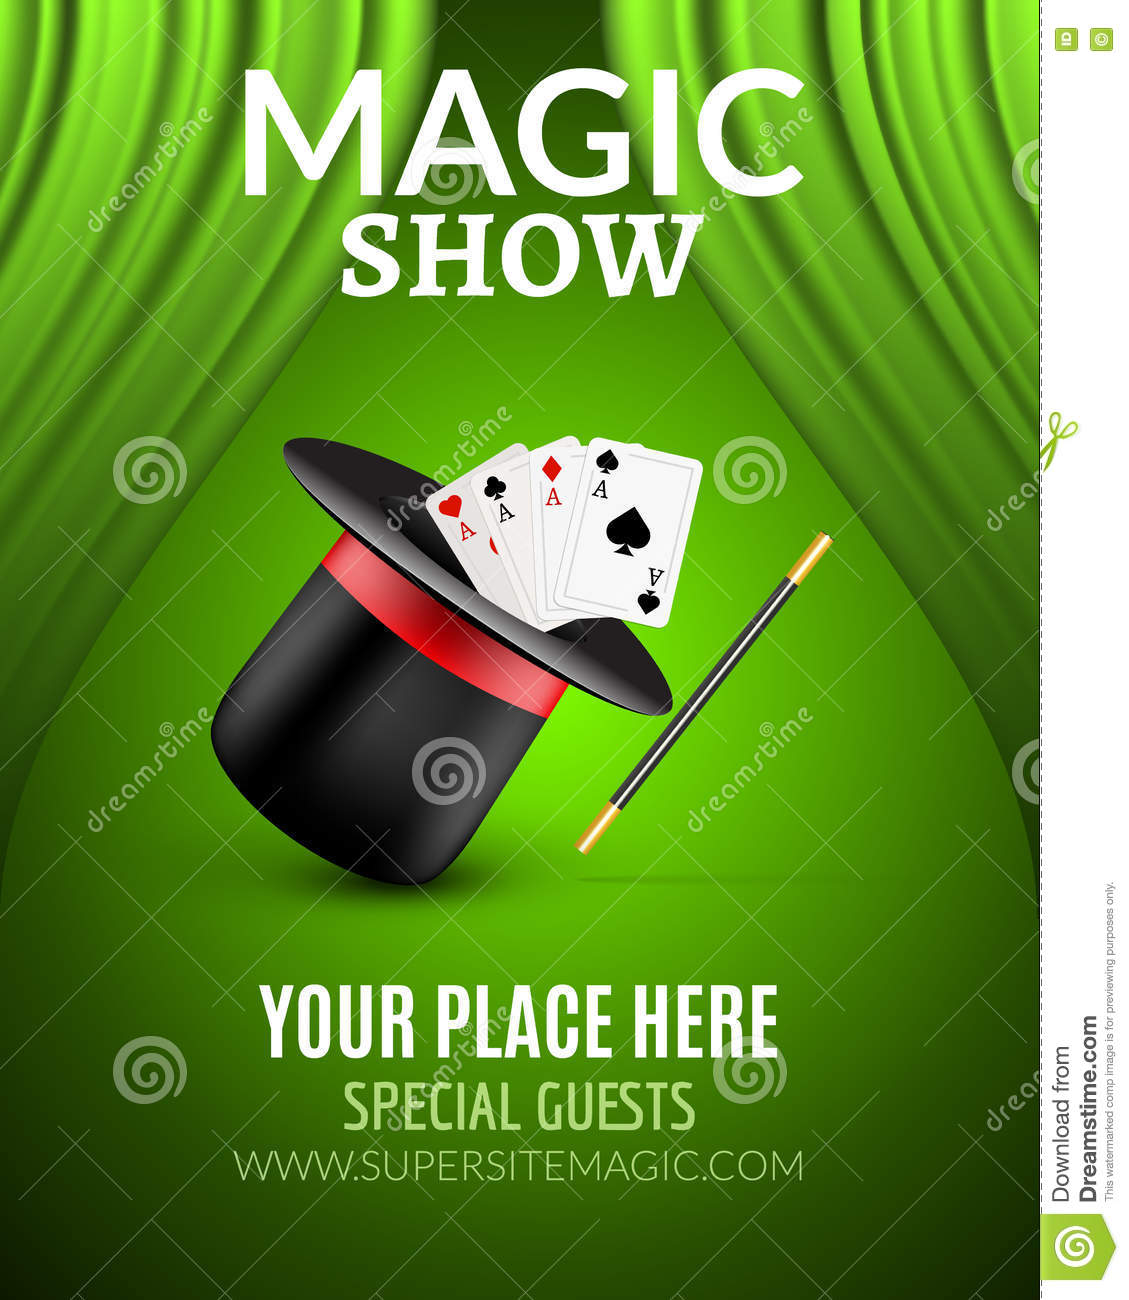 Magic show poster design template magic show flyer design with magic hat and curtains stock